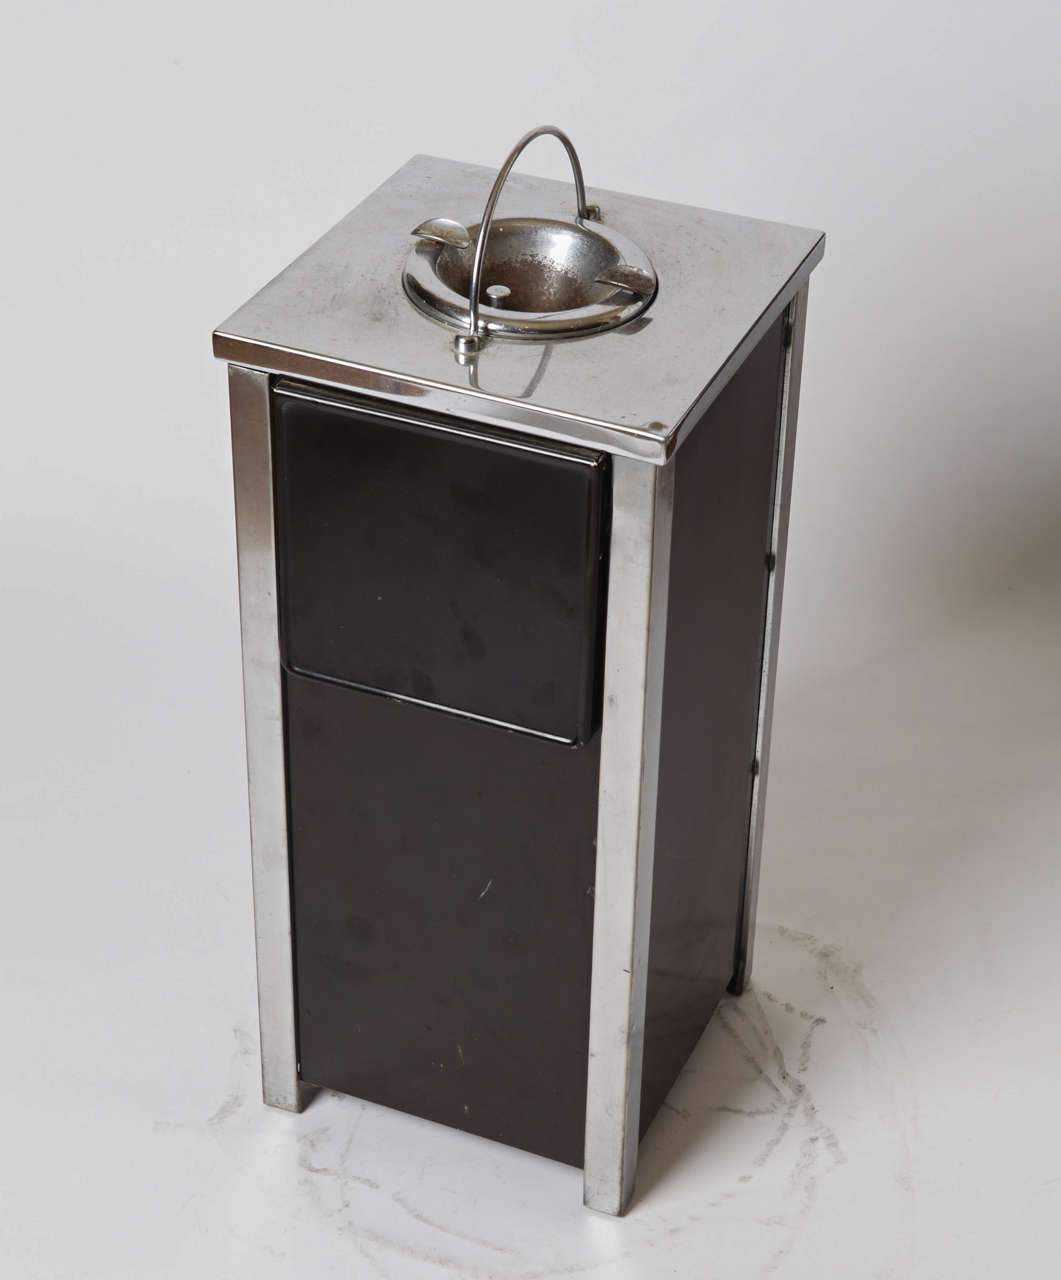 Machine Age Art Deco Smokestand Cocktail Cabinet smoke stand bar  Industrial design classic smoker with collapsible shelves and inside storage. Enameled and chromed steel. Ash cup has substantial surface wear, otherwise good condition. Operating